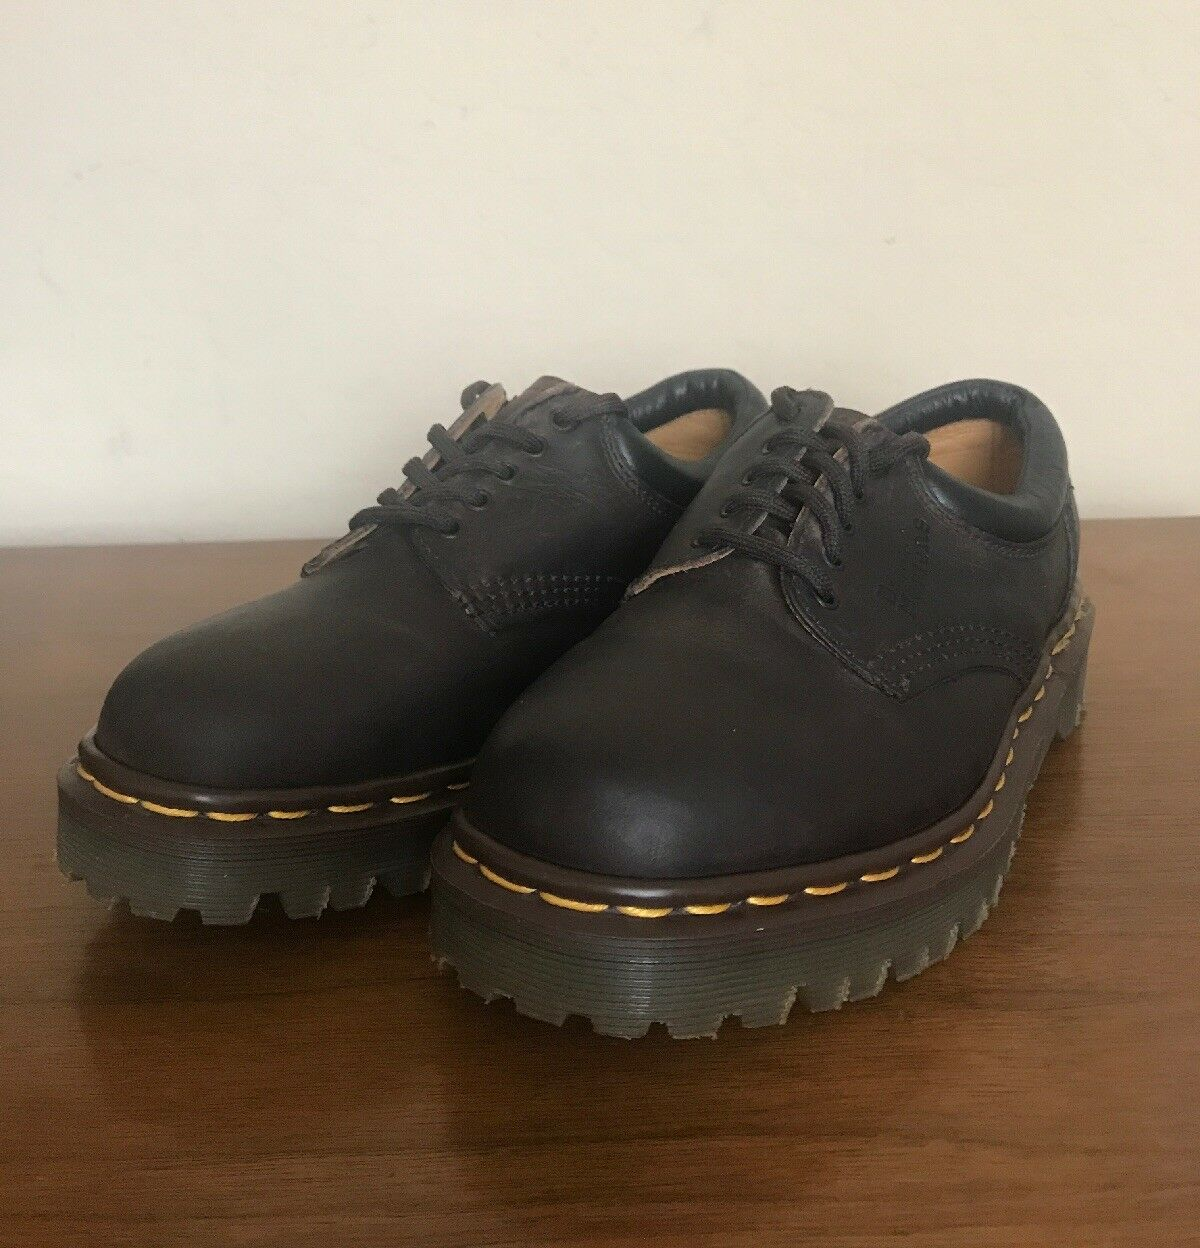 Doc Dr. Martens Original Made In England Leather shoes 8053 Brown Men's US sz 4